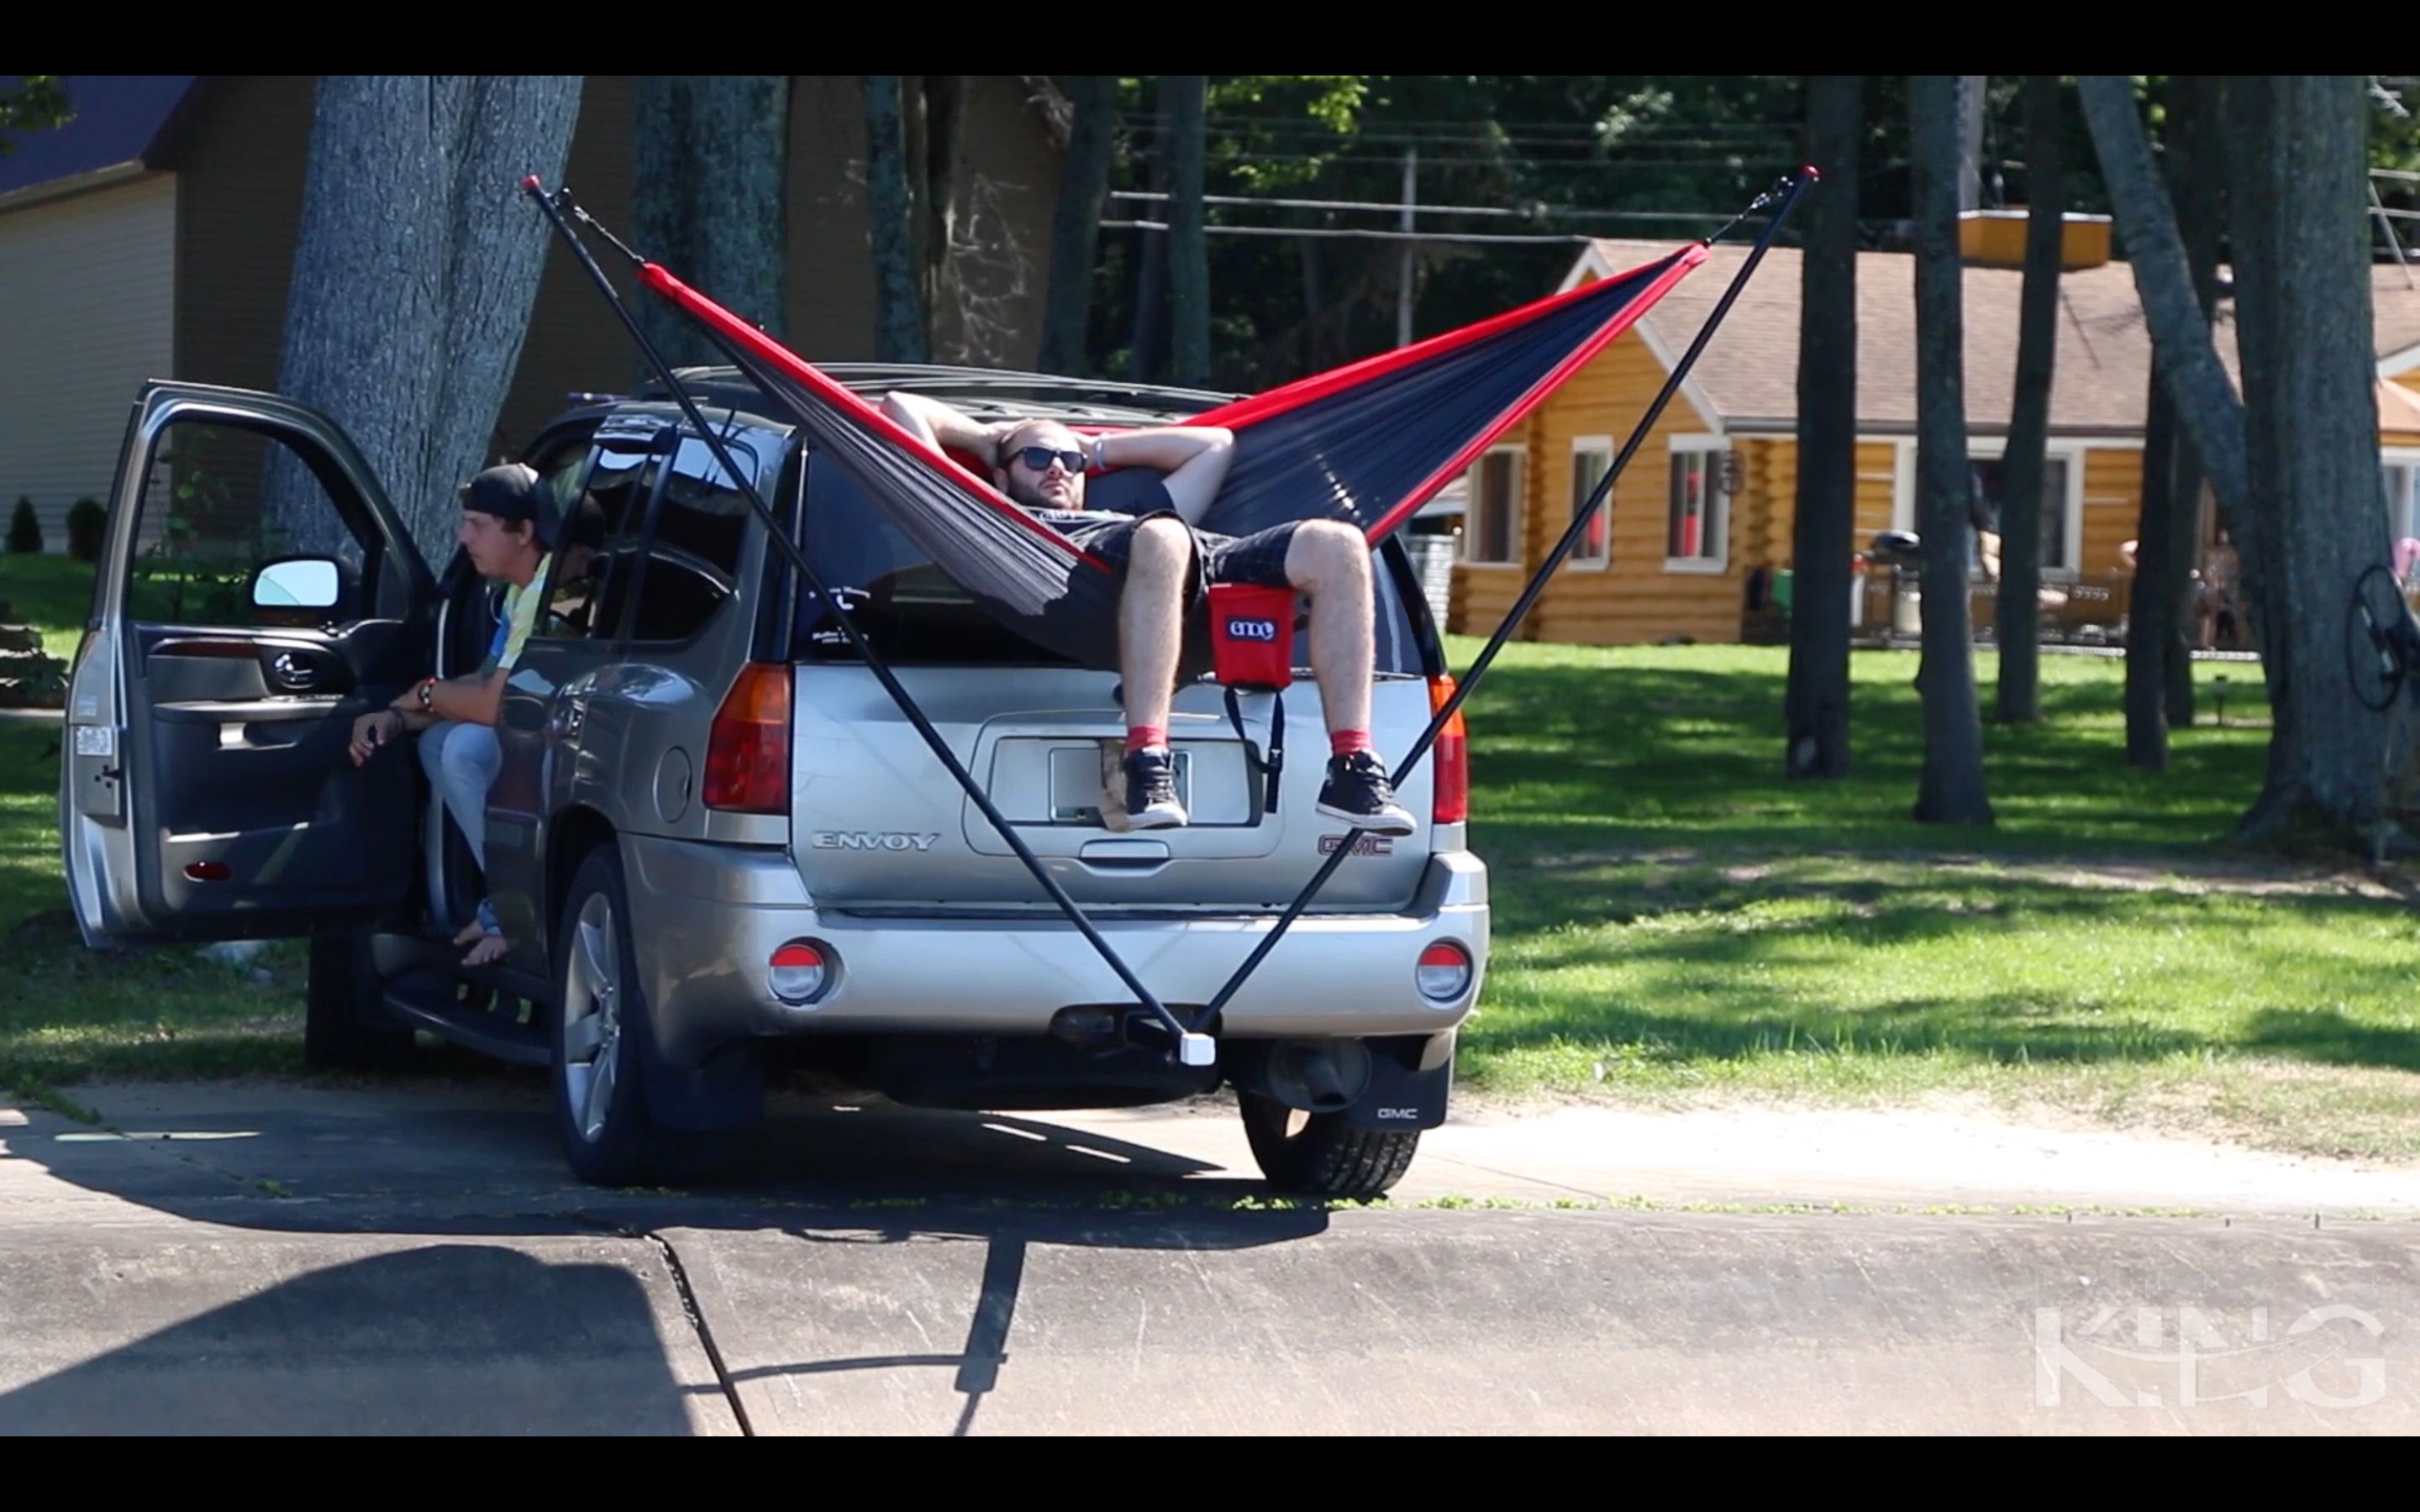 Hammock King The Collapsible Trailer Hitch Hammock Stand For Your